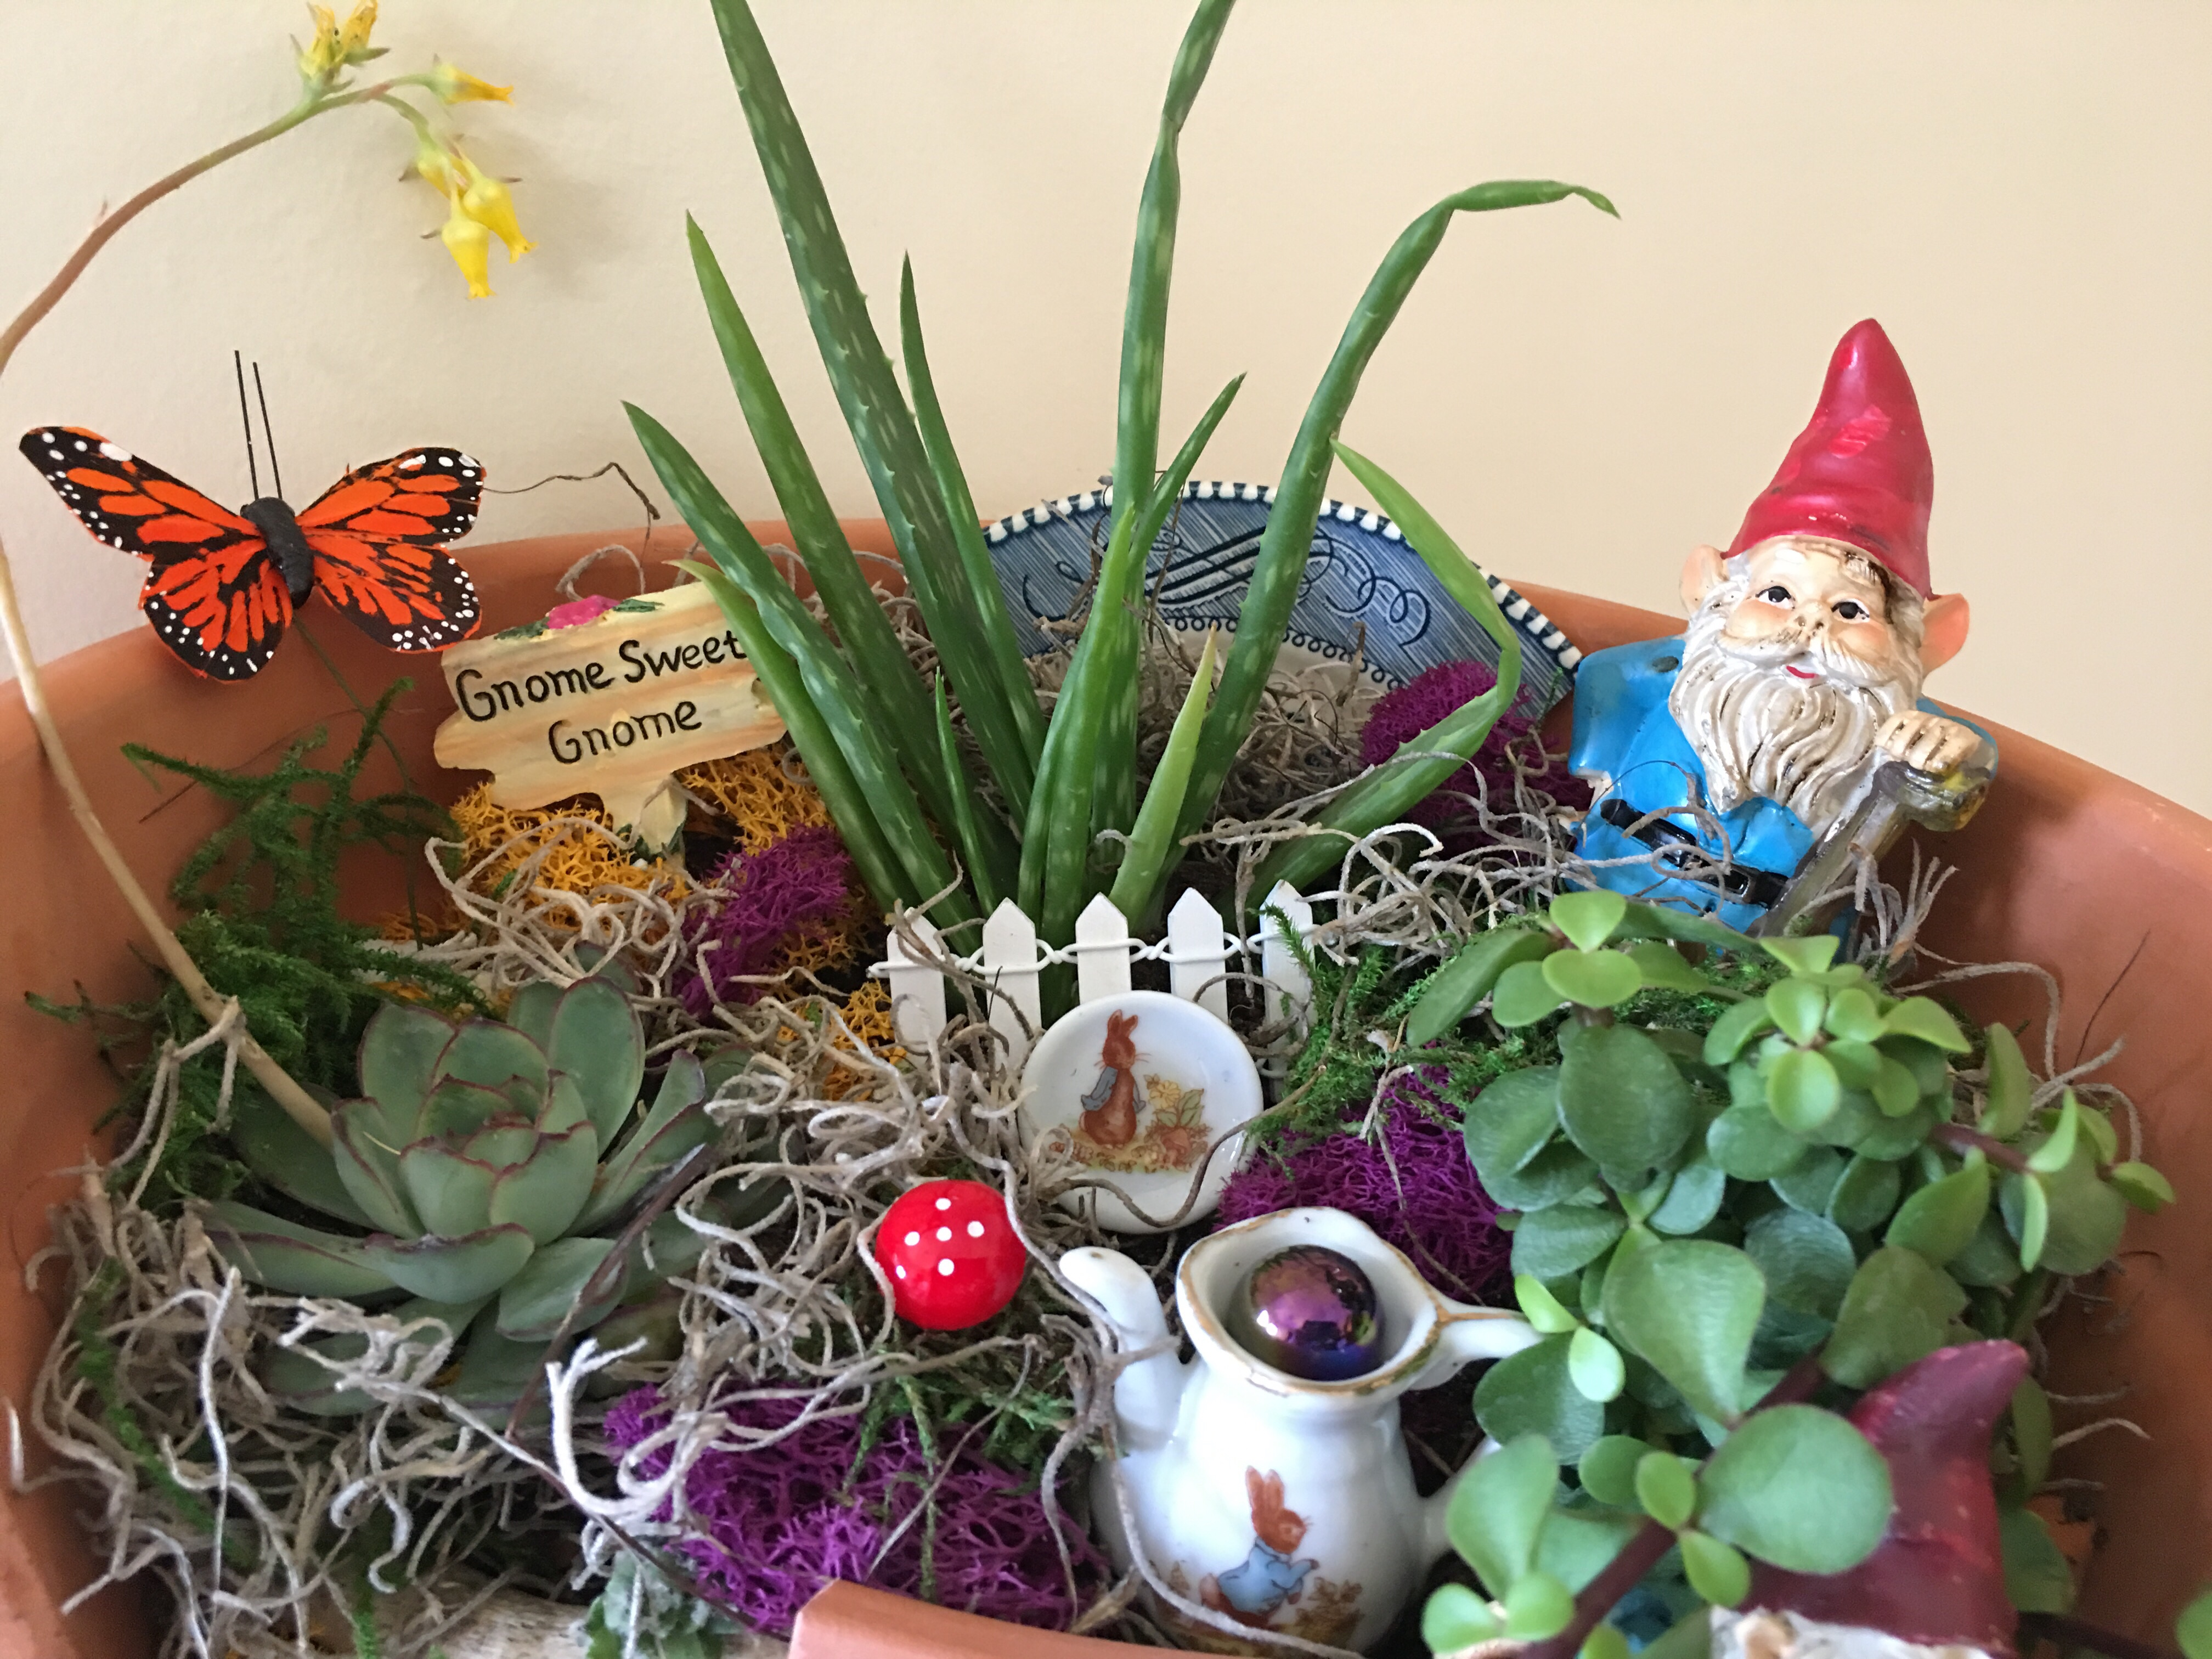 Preferential Central Indiana Had Such A Wintry Whyare We Still Getting I Even Bor Planting Pansies This Gnome Making A Magical Miniature Garden At Caravan Here garden Miniature Garden Gnomes